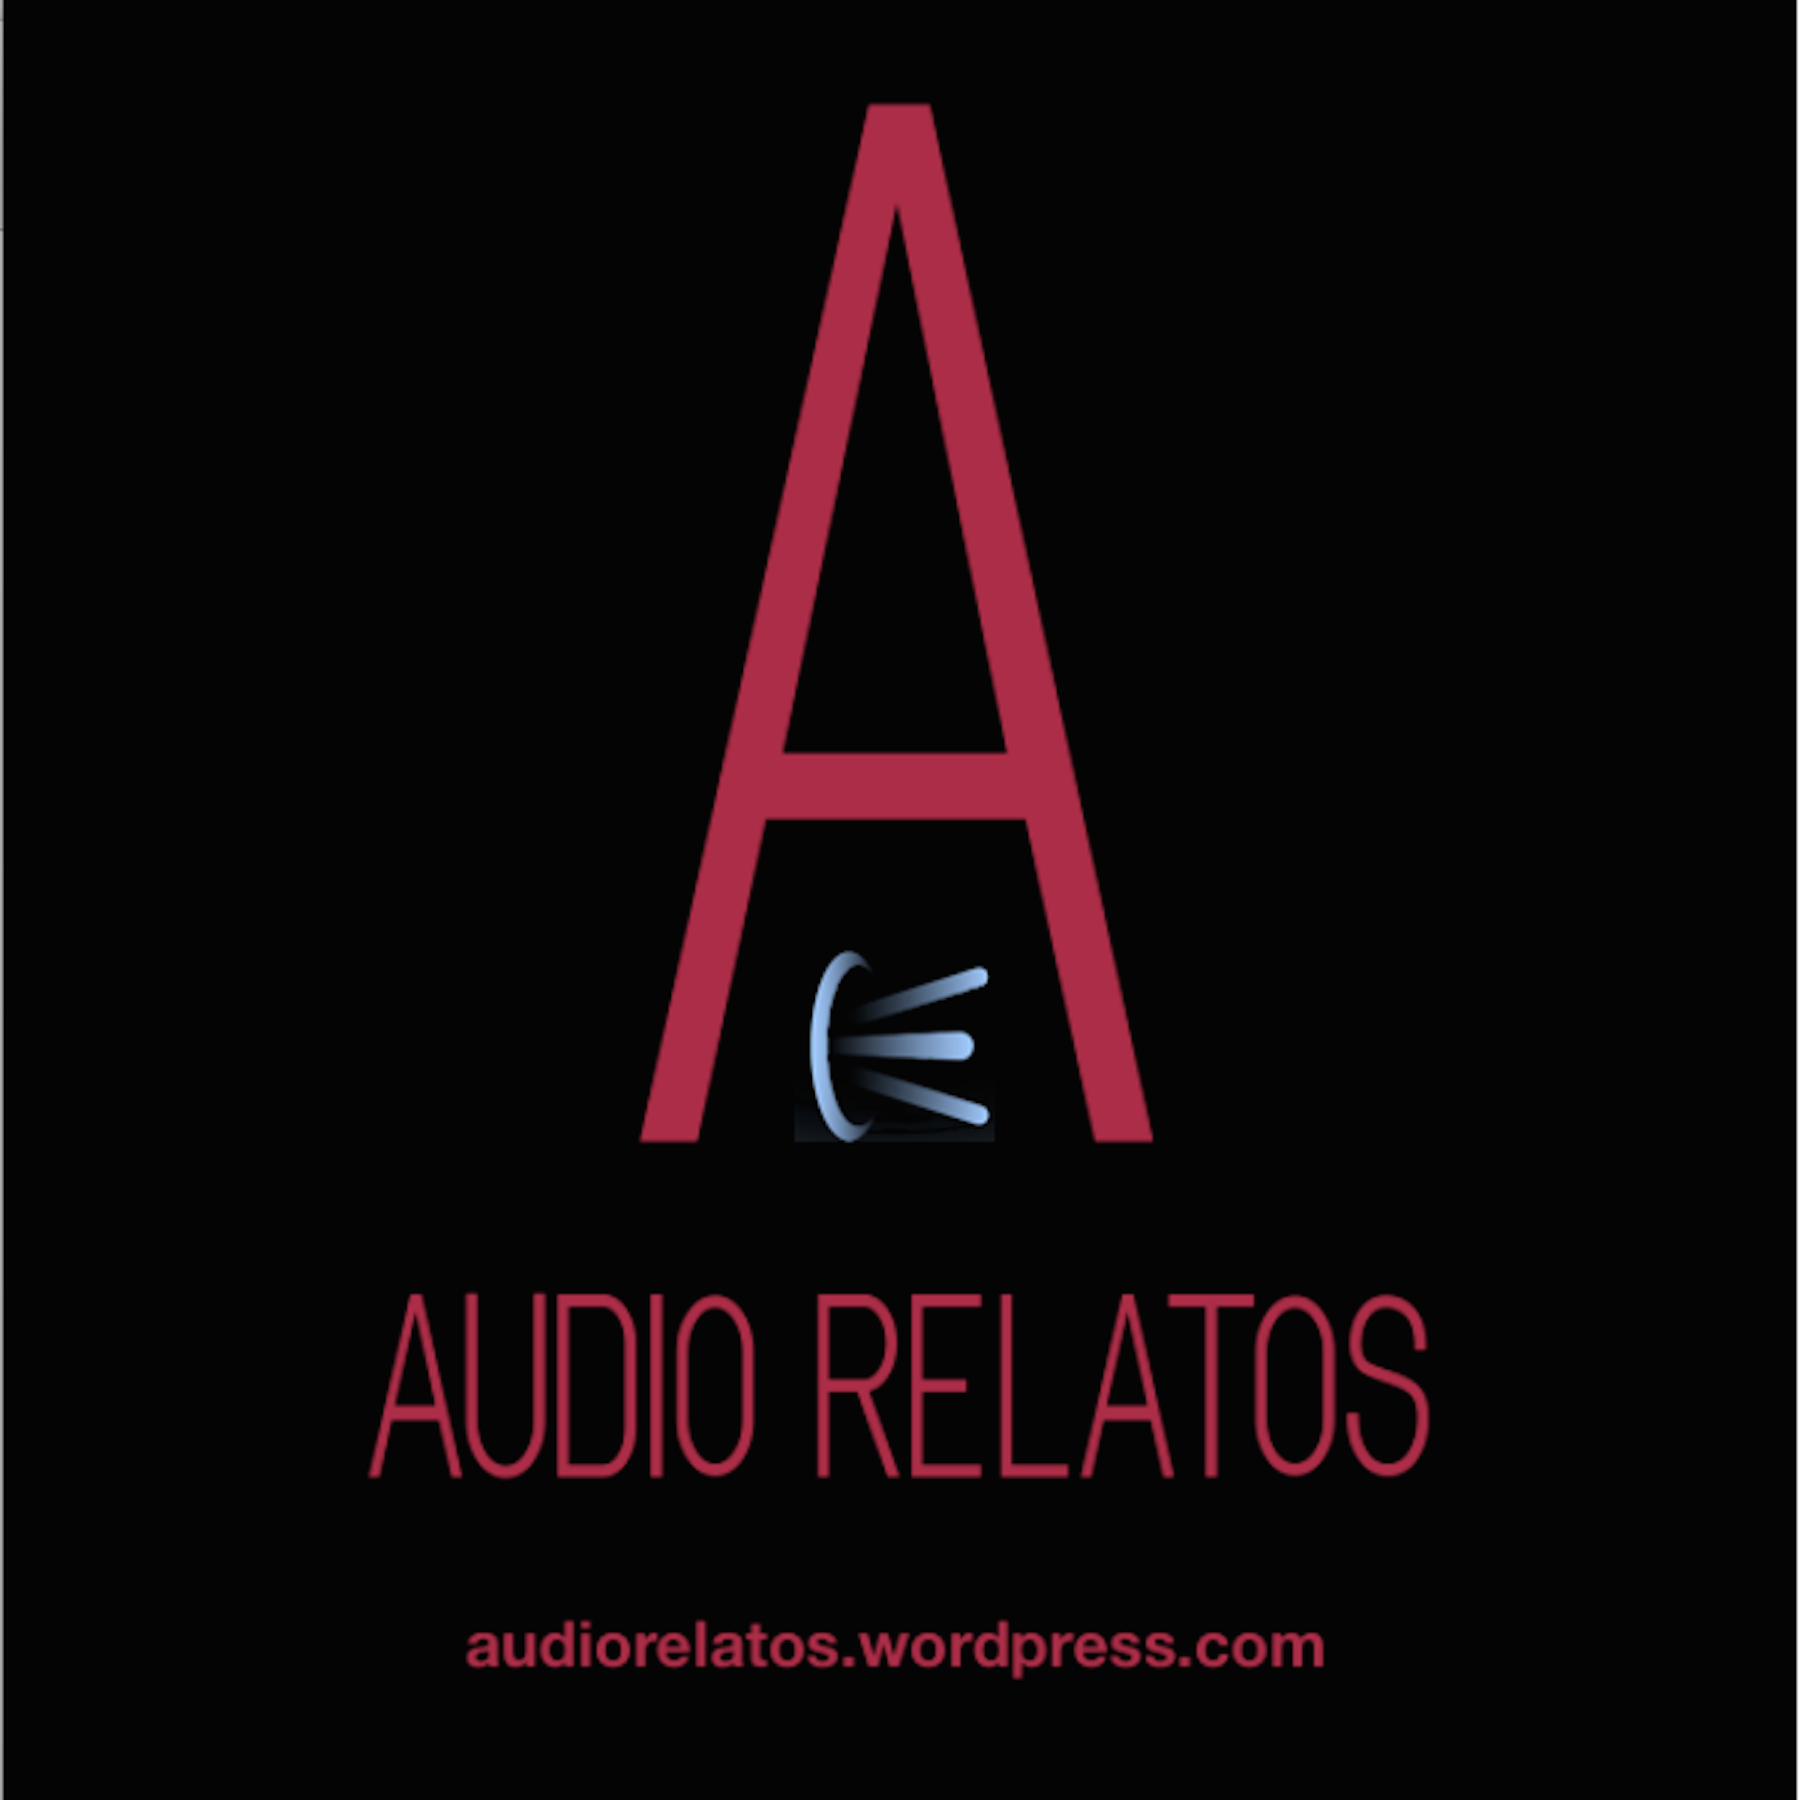 AudioRelatos